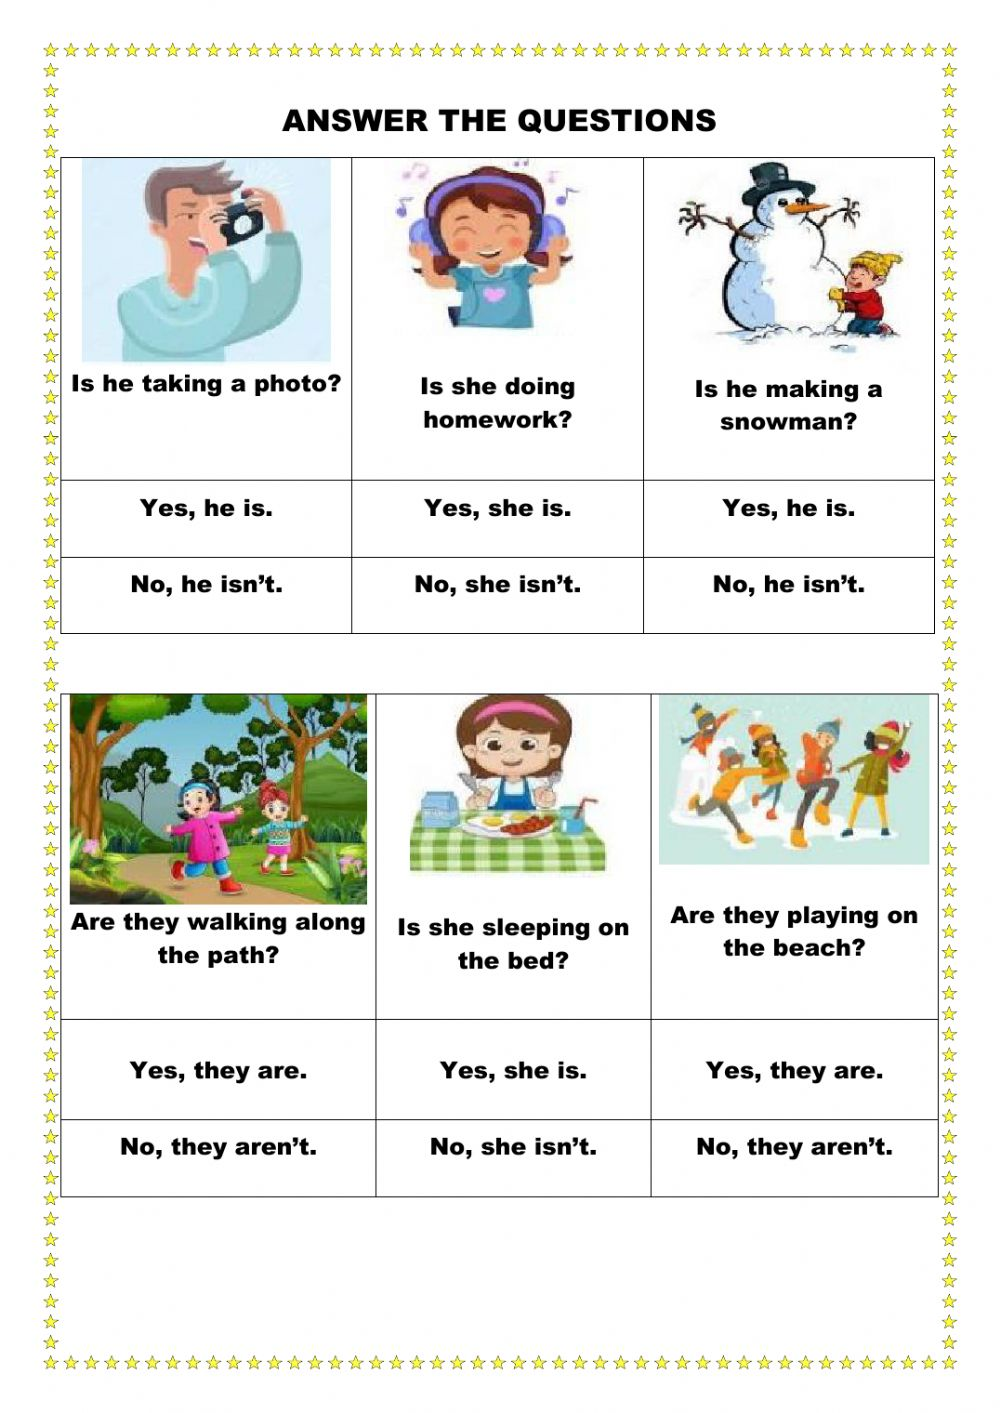 Answer the questions activity for Kids